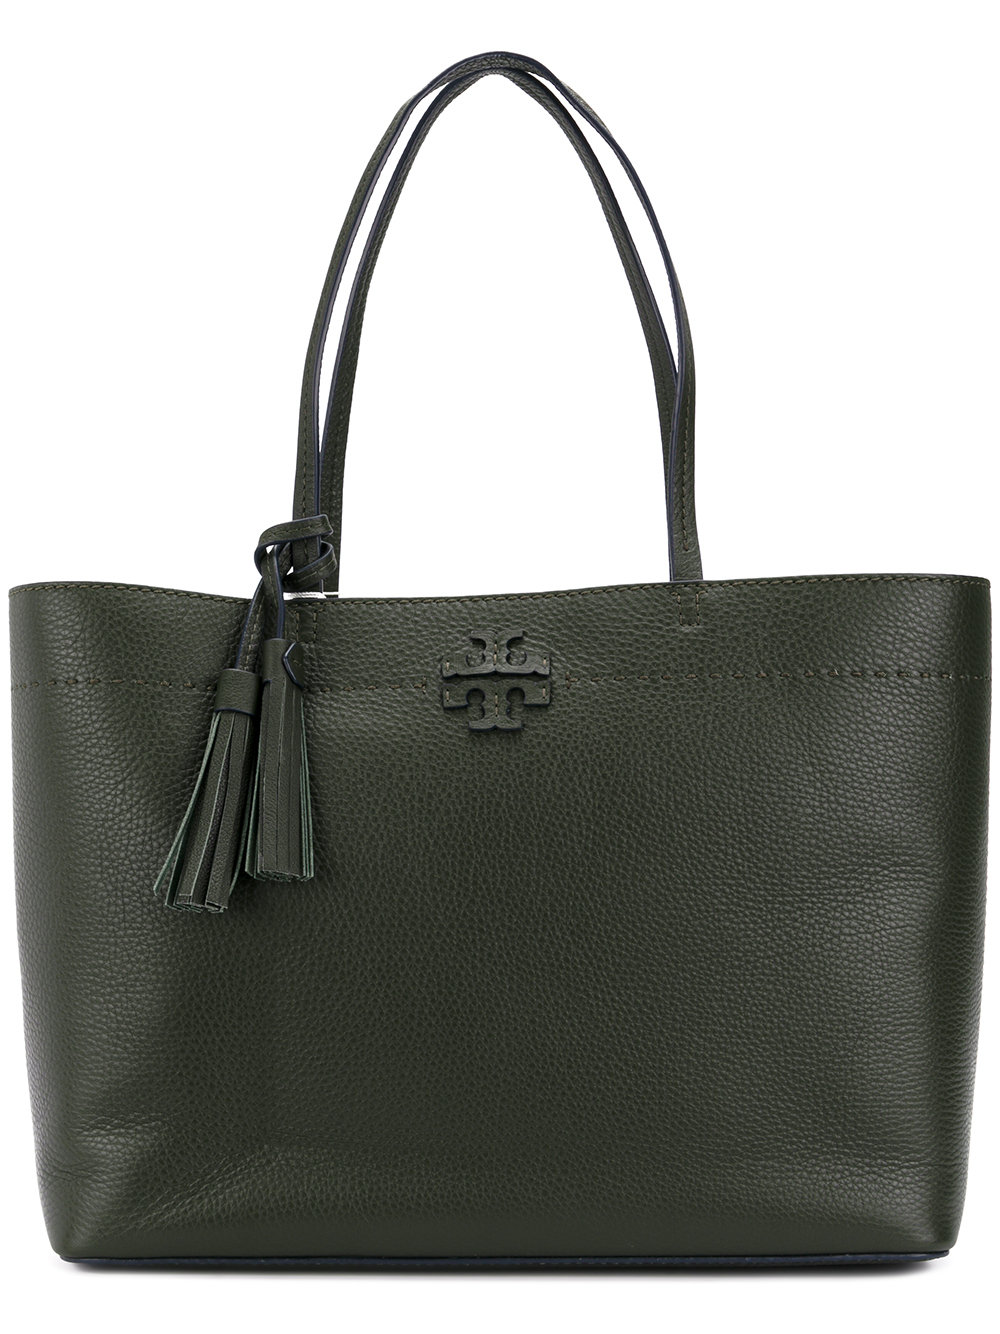 Tory Burch SHOPPING